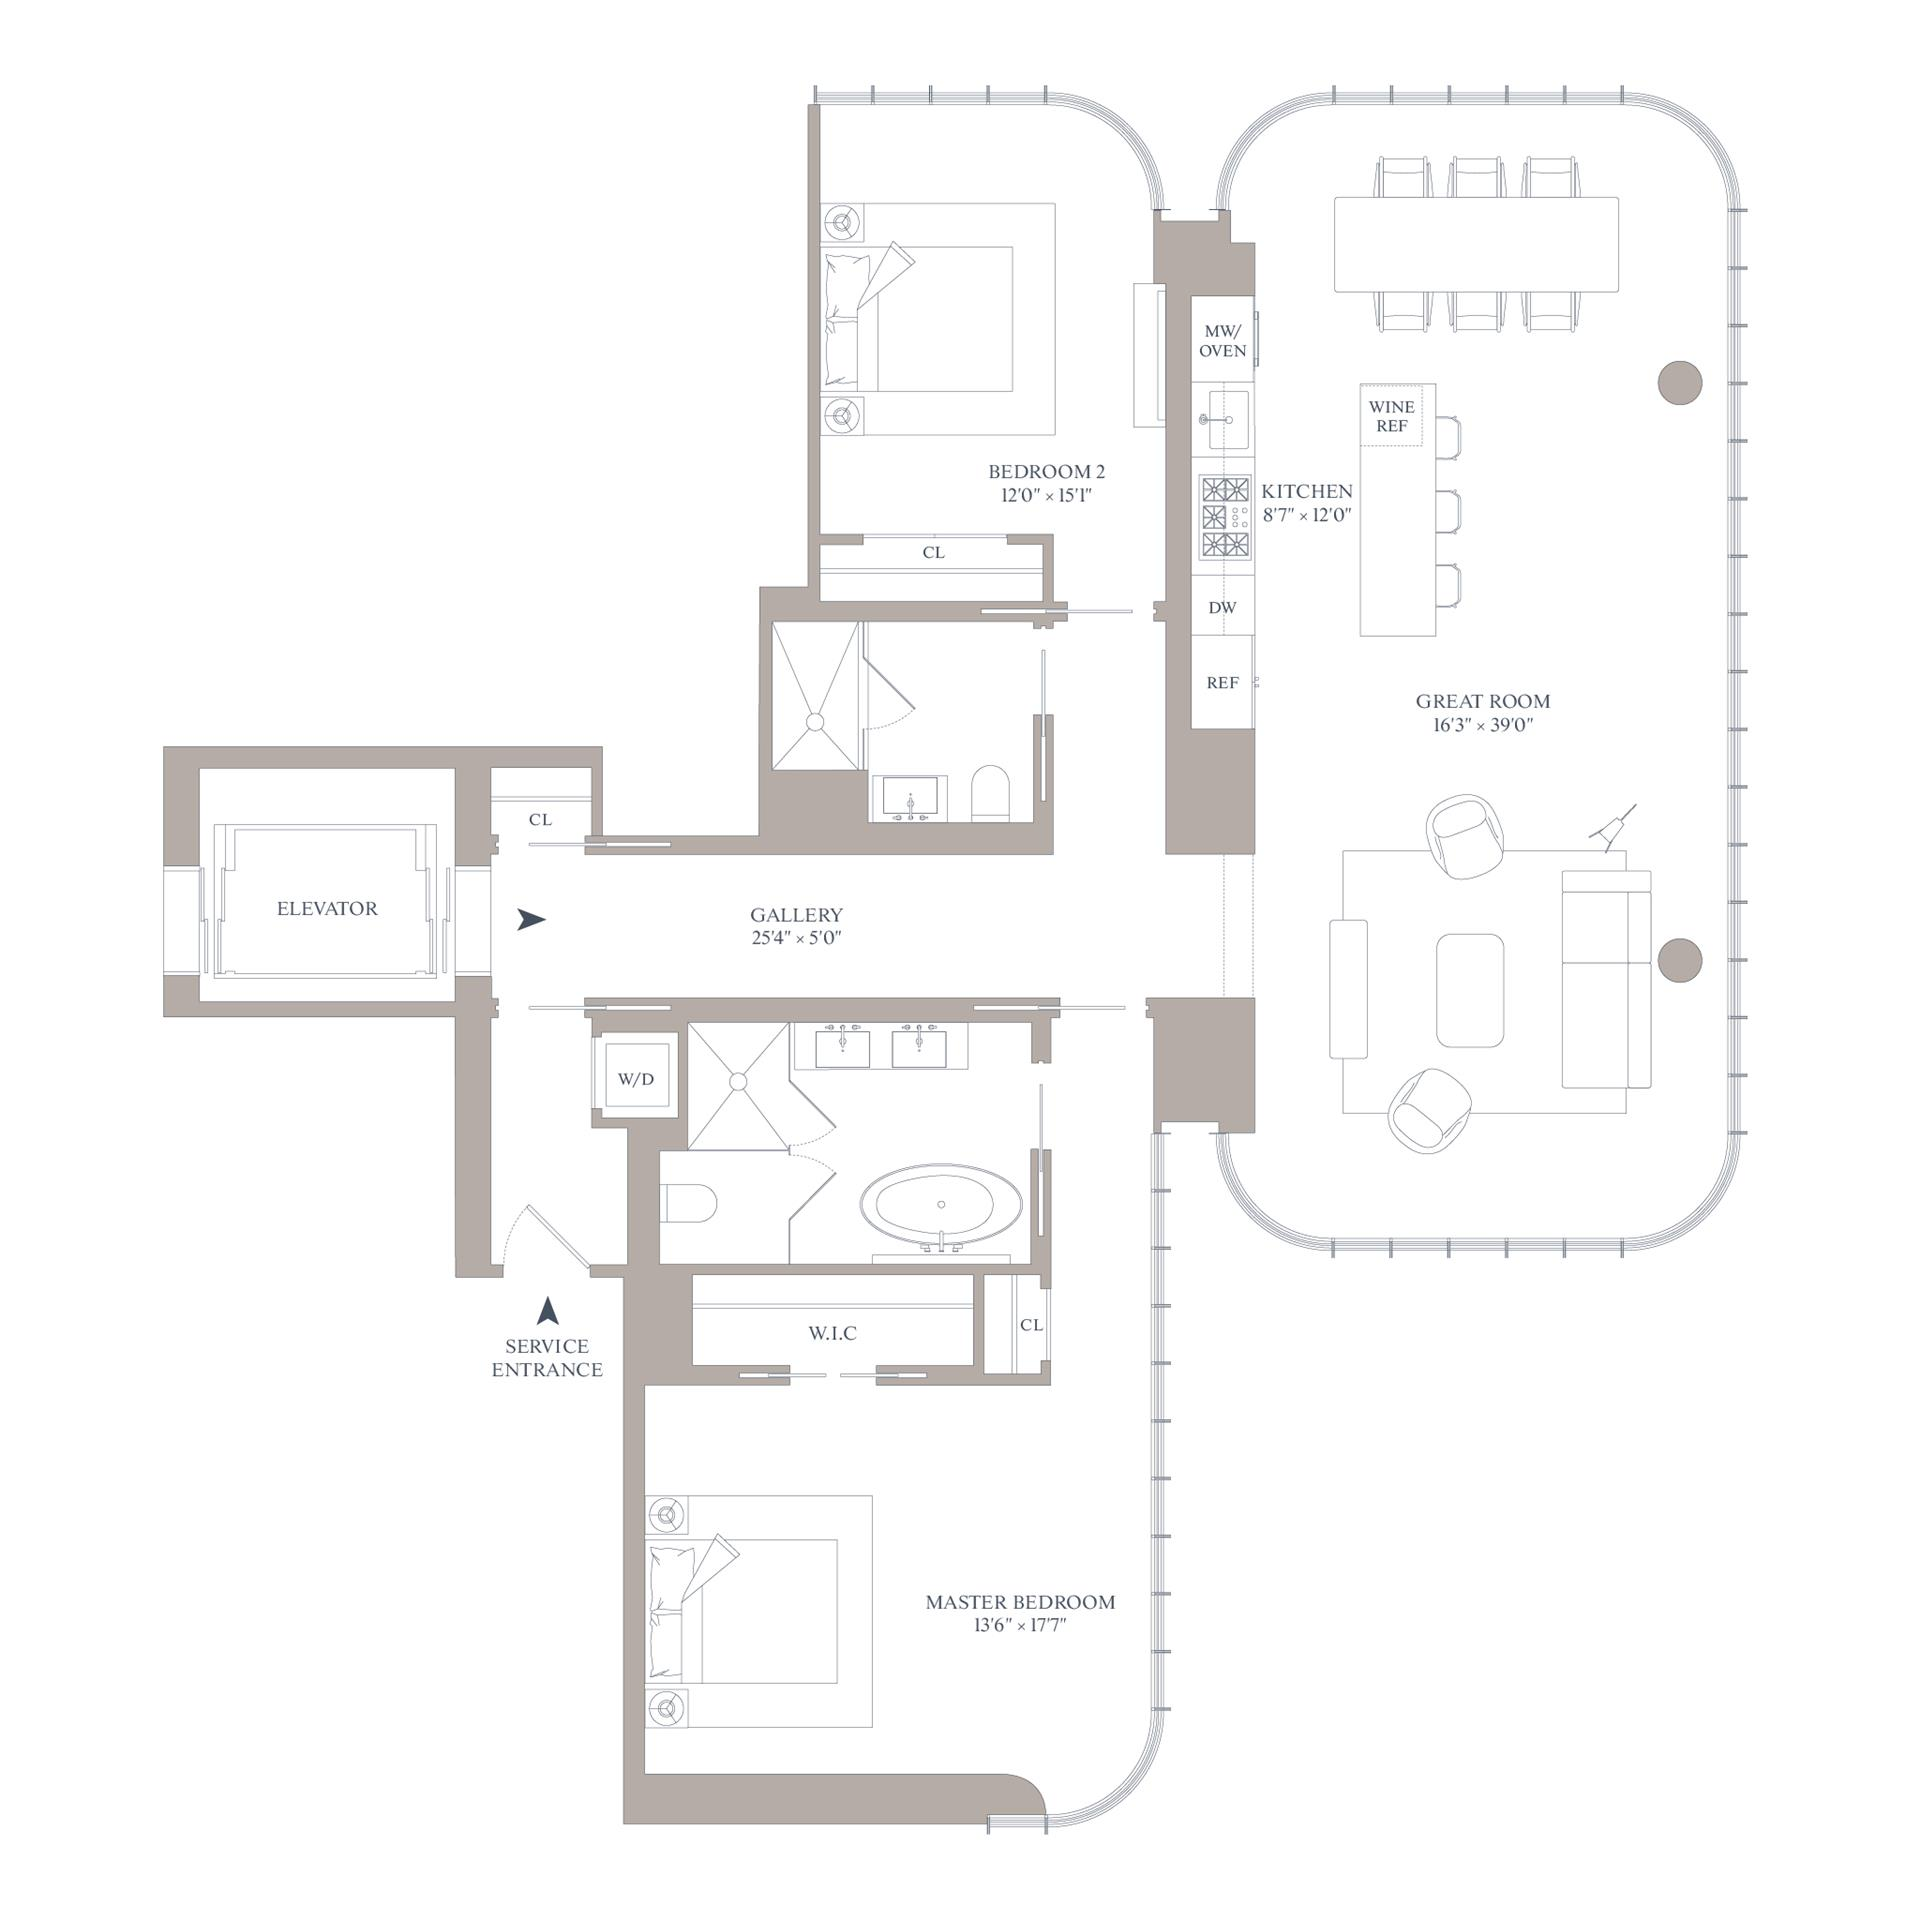 Floor plan of 565 Broome St, N23B - SoHo - Nolita, New York